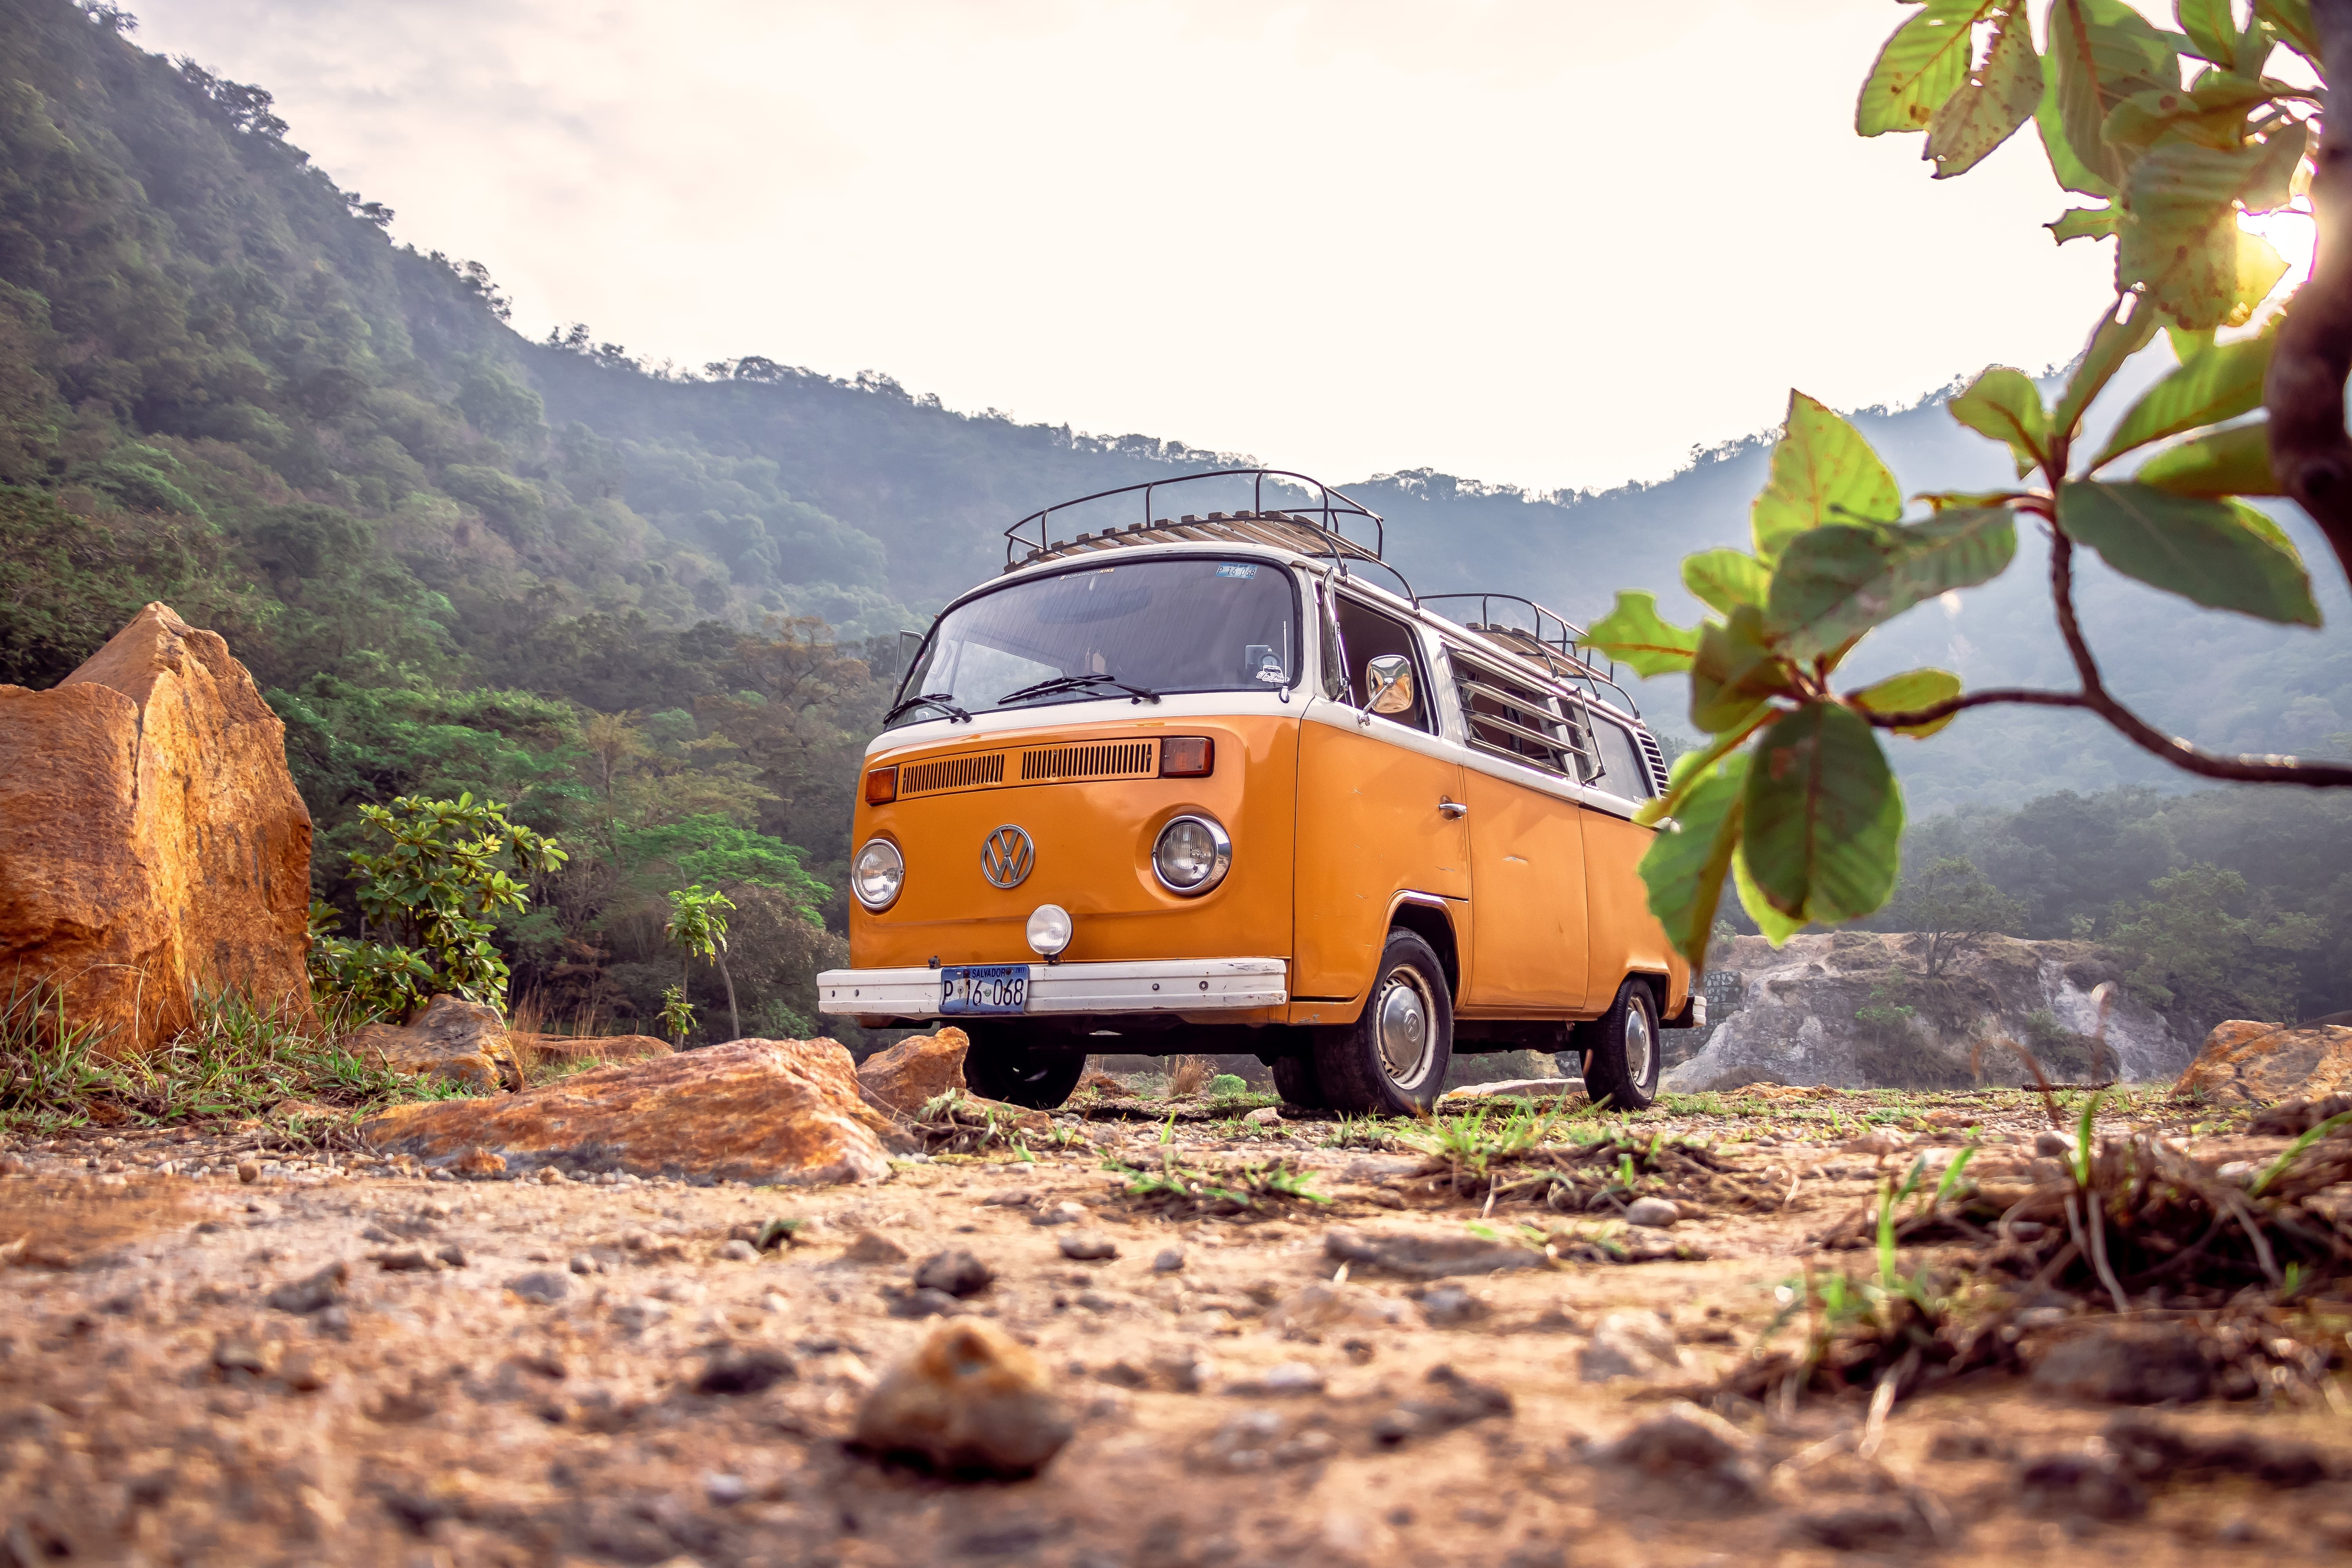 #vanlife, Live the #Vanlife Without Spending A Fortune